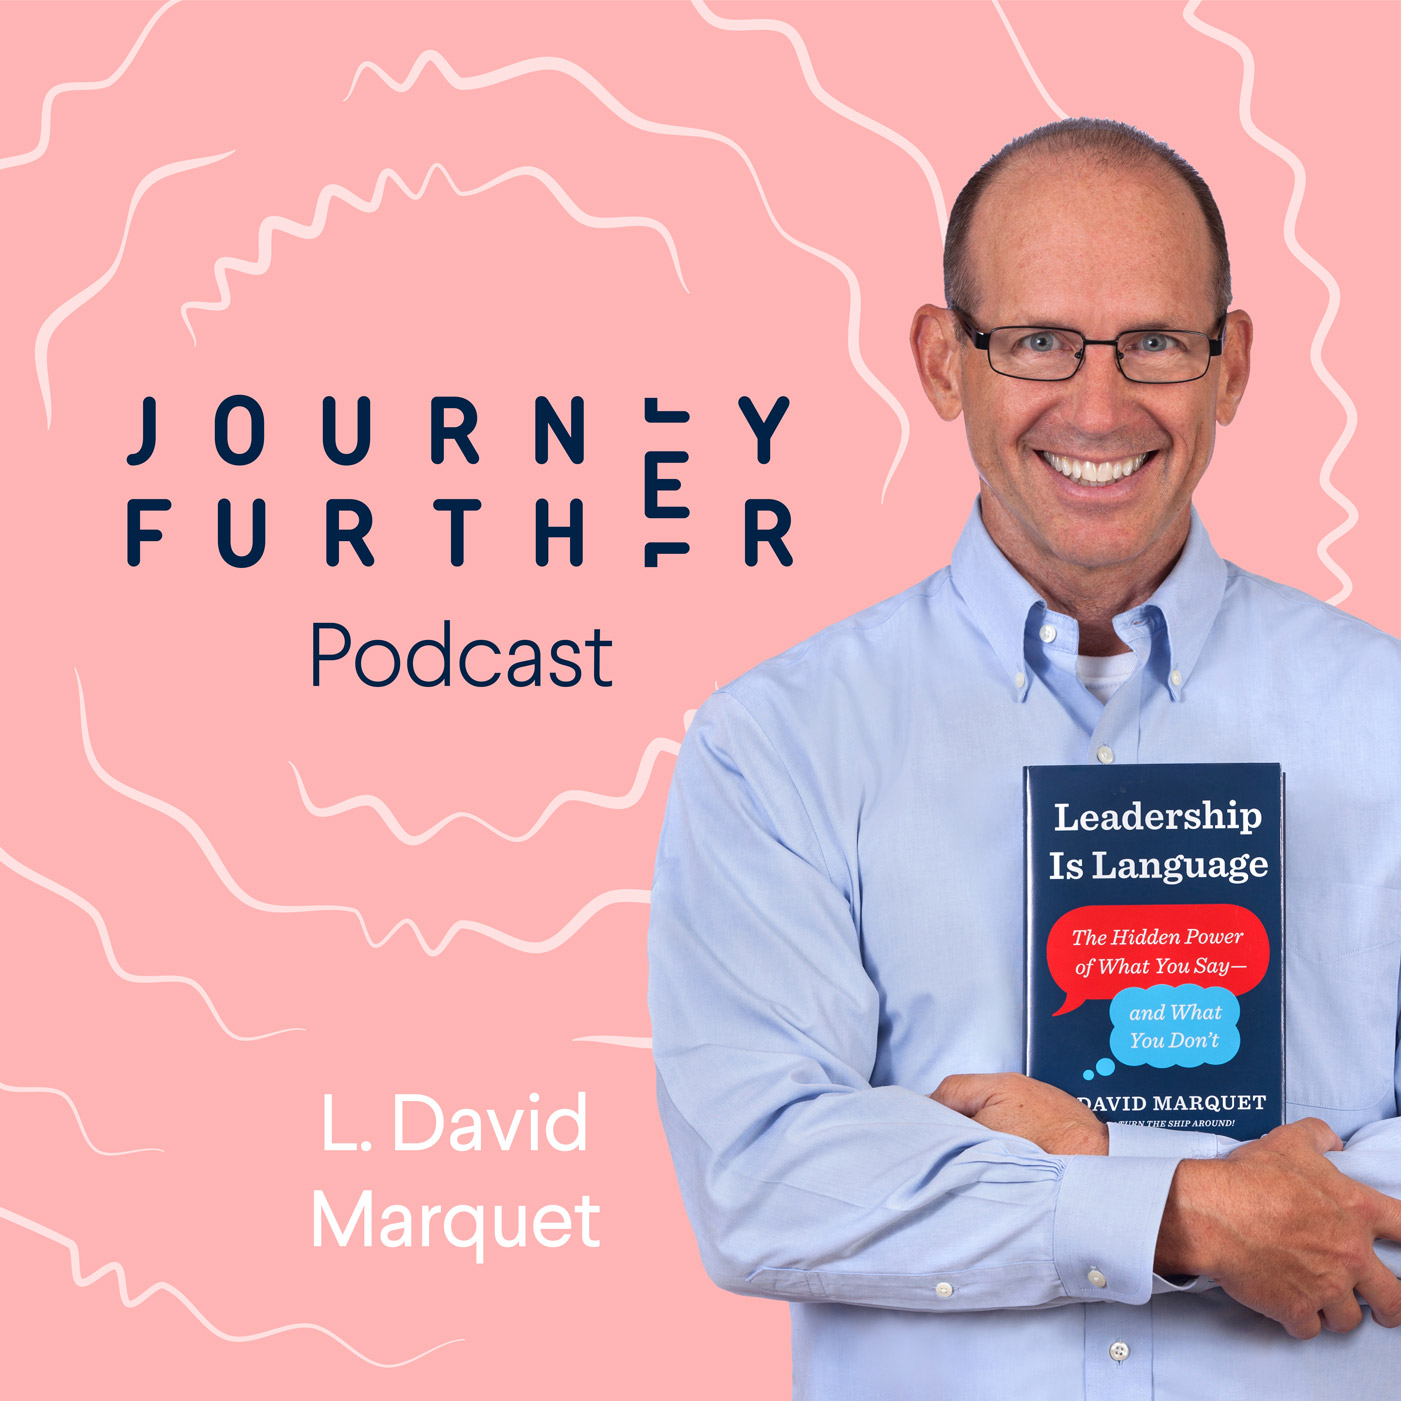 Leadership is Language with David Marquet